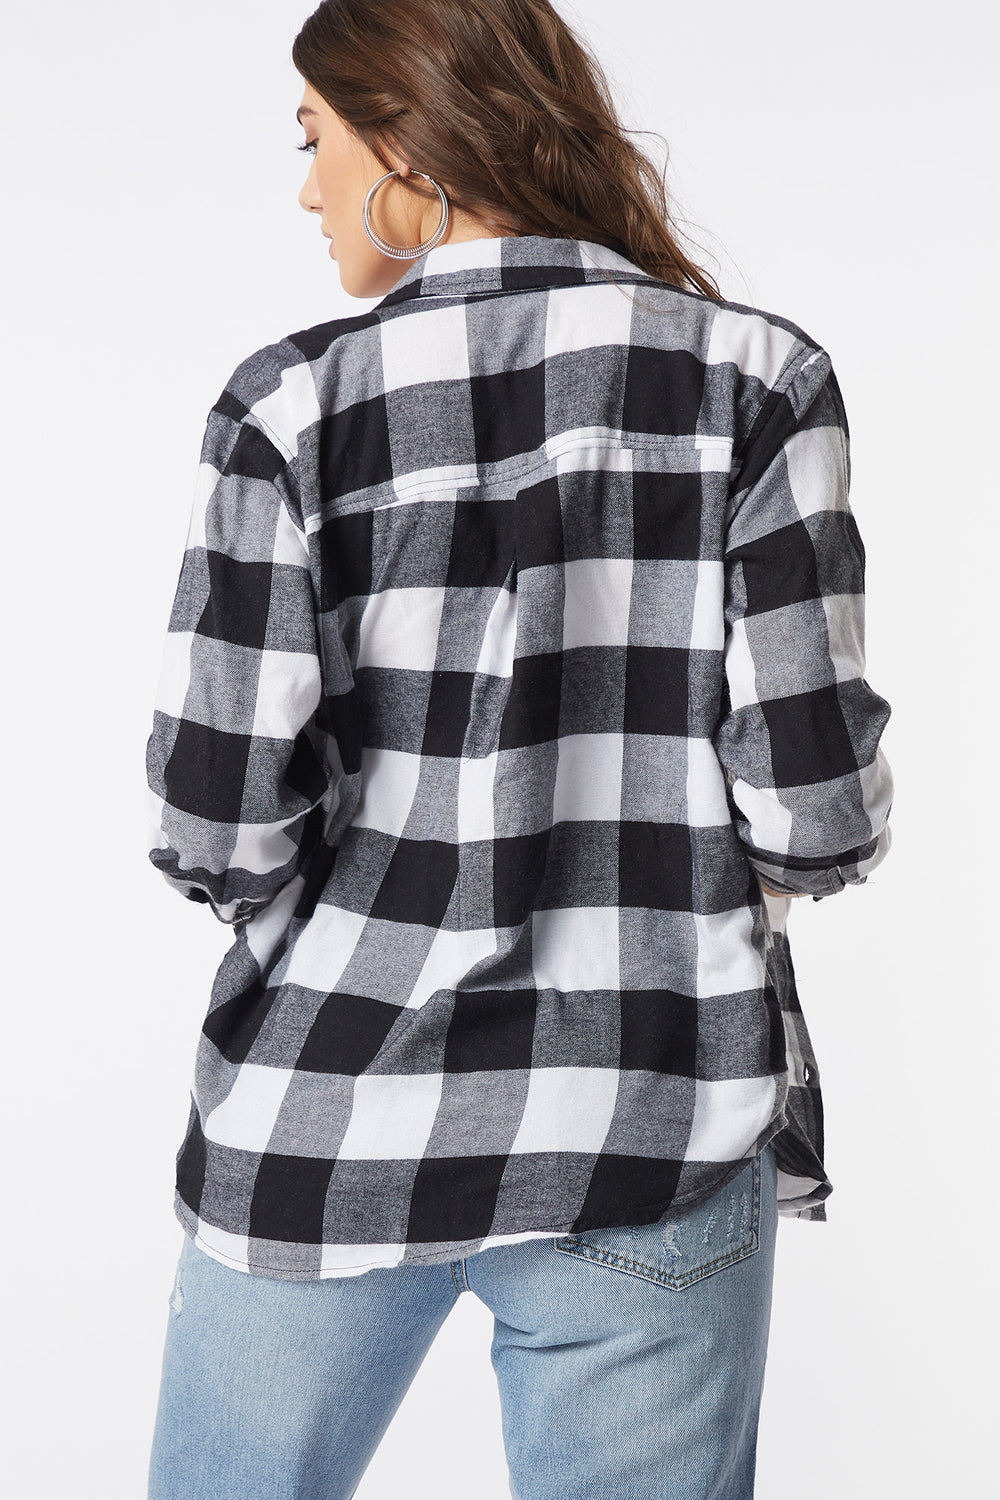 Plaid Flannel Button-Up Long Sleeve Top Black with White